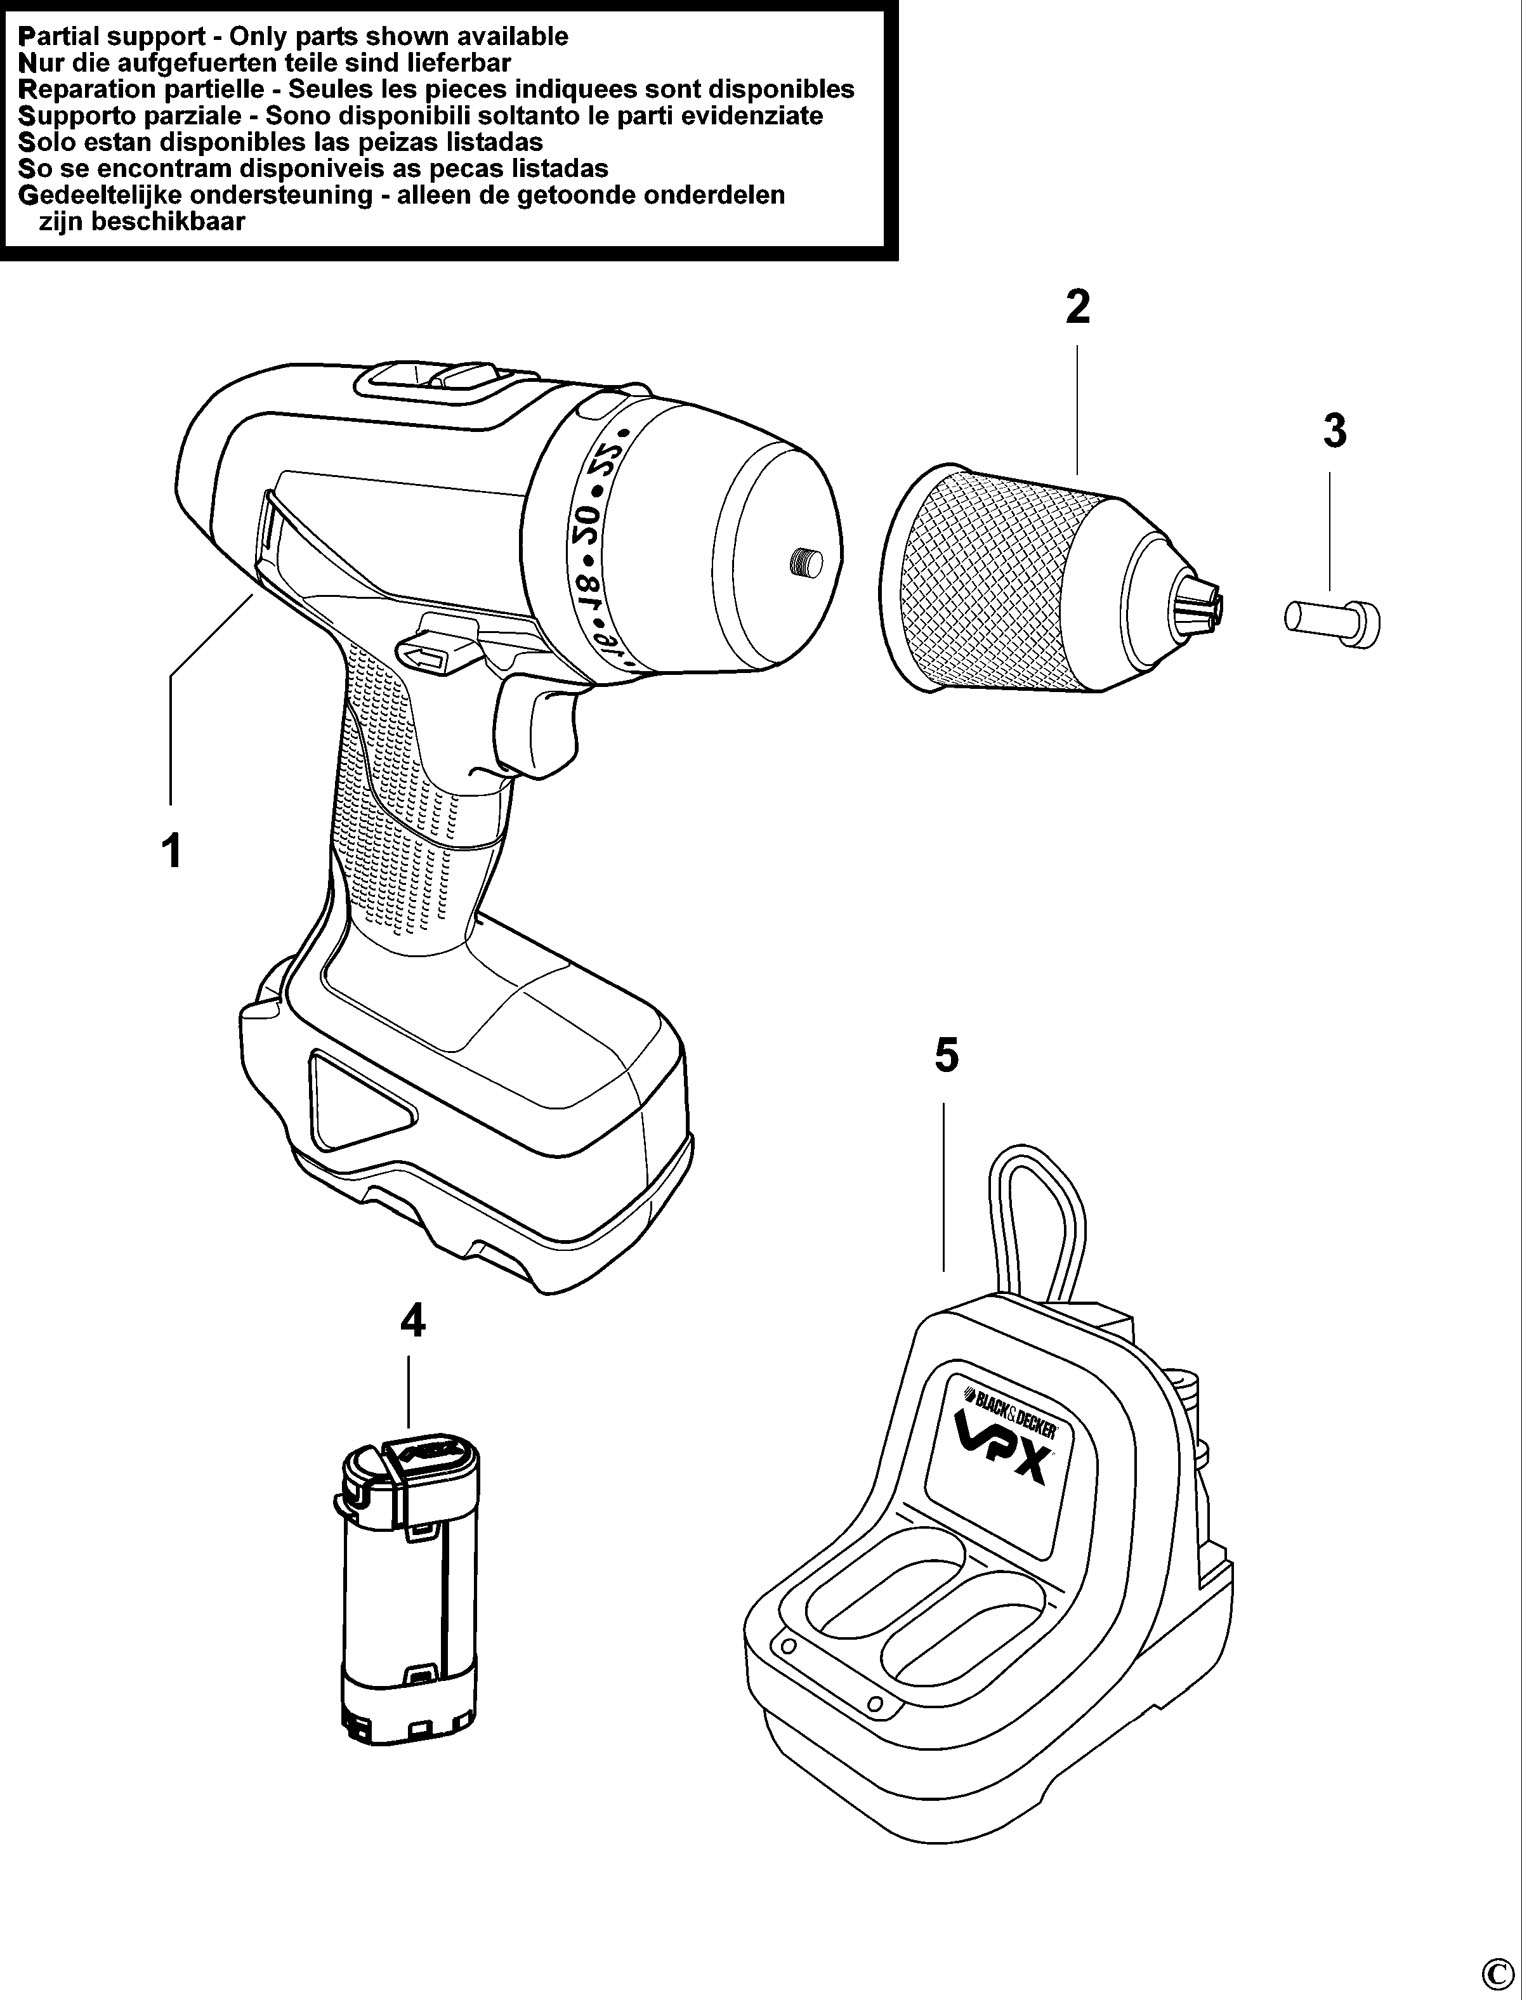 Spares for Black & Decker Vpx1222 Hammer Drill (type 1 ...